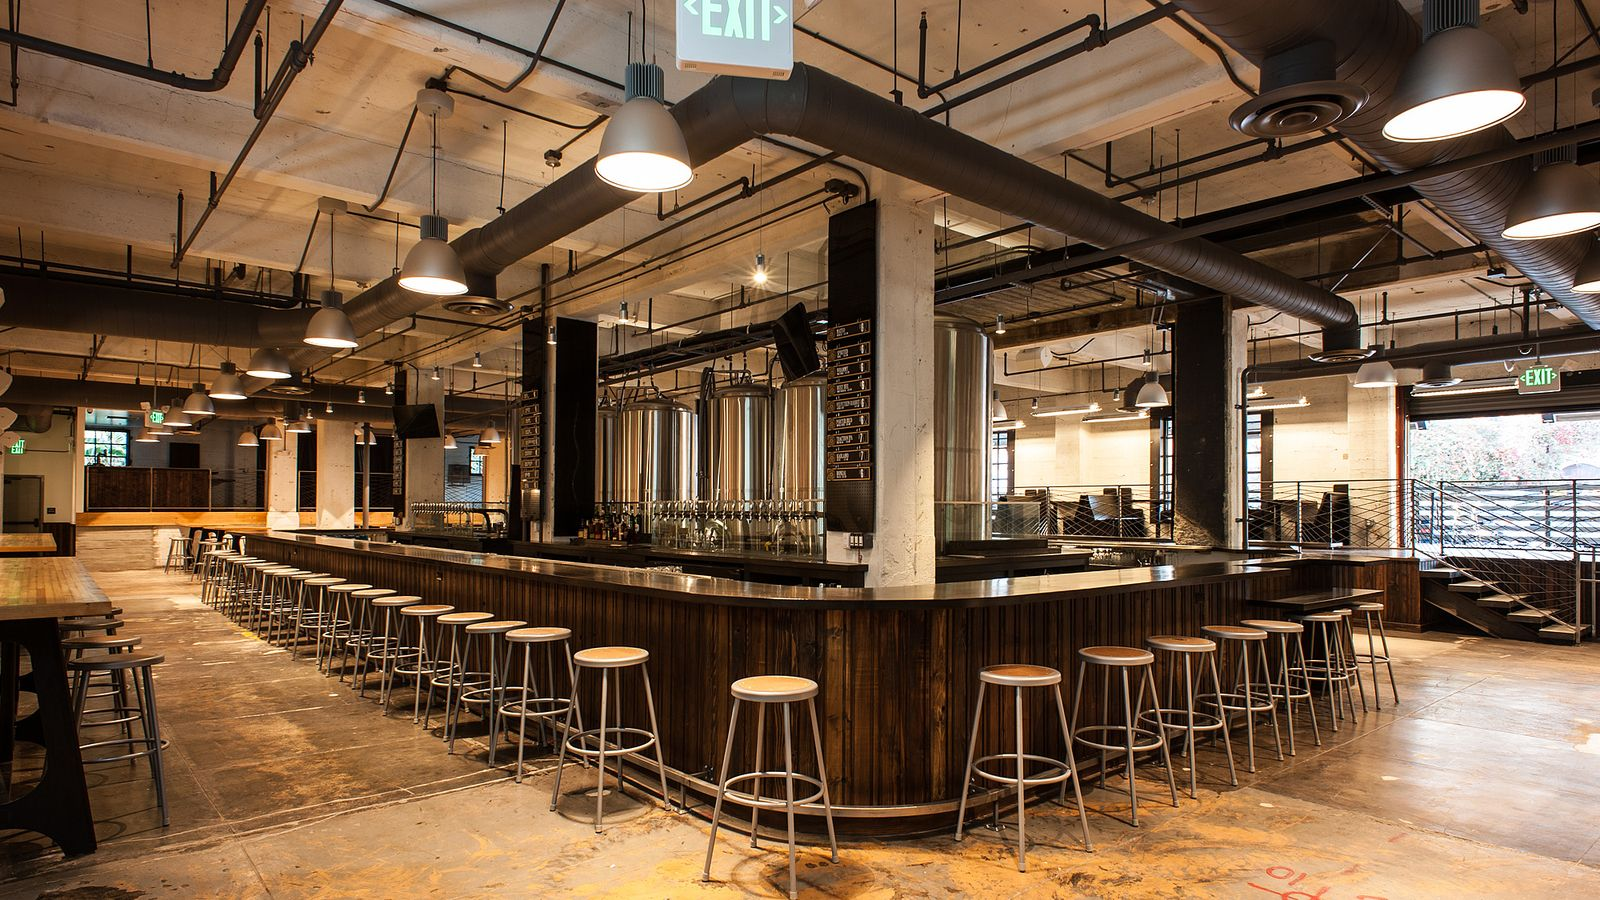 The Best New LA Craft Beer Bars Breweries  Bottle Shops Fall  Winter 2015